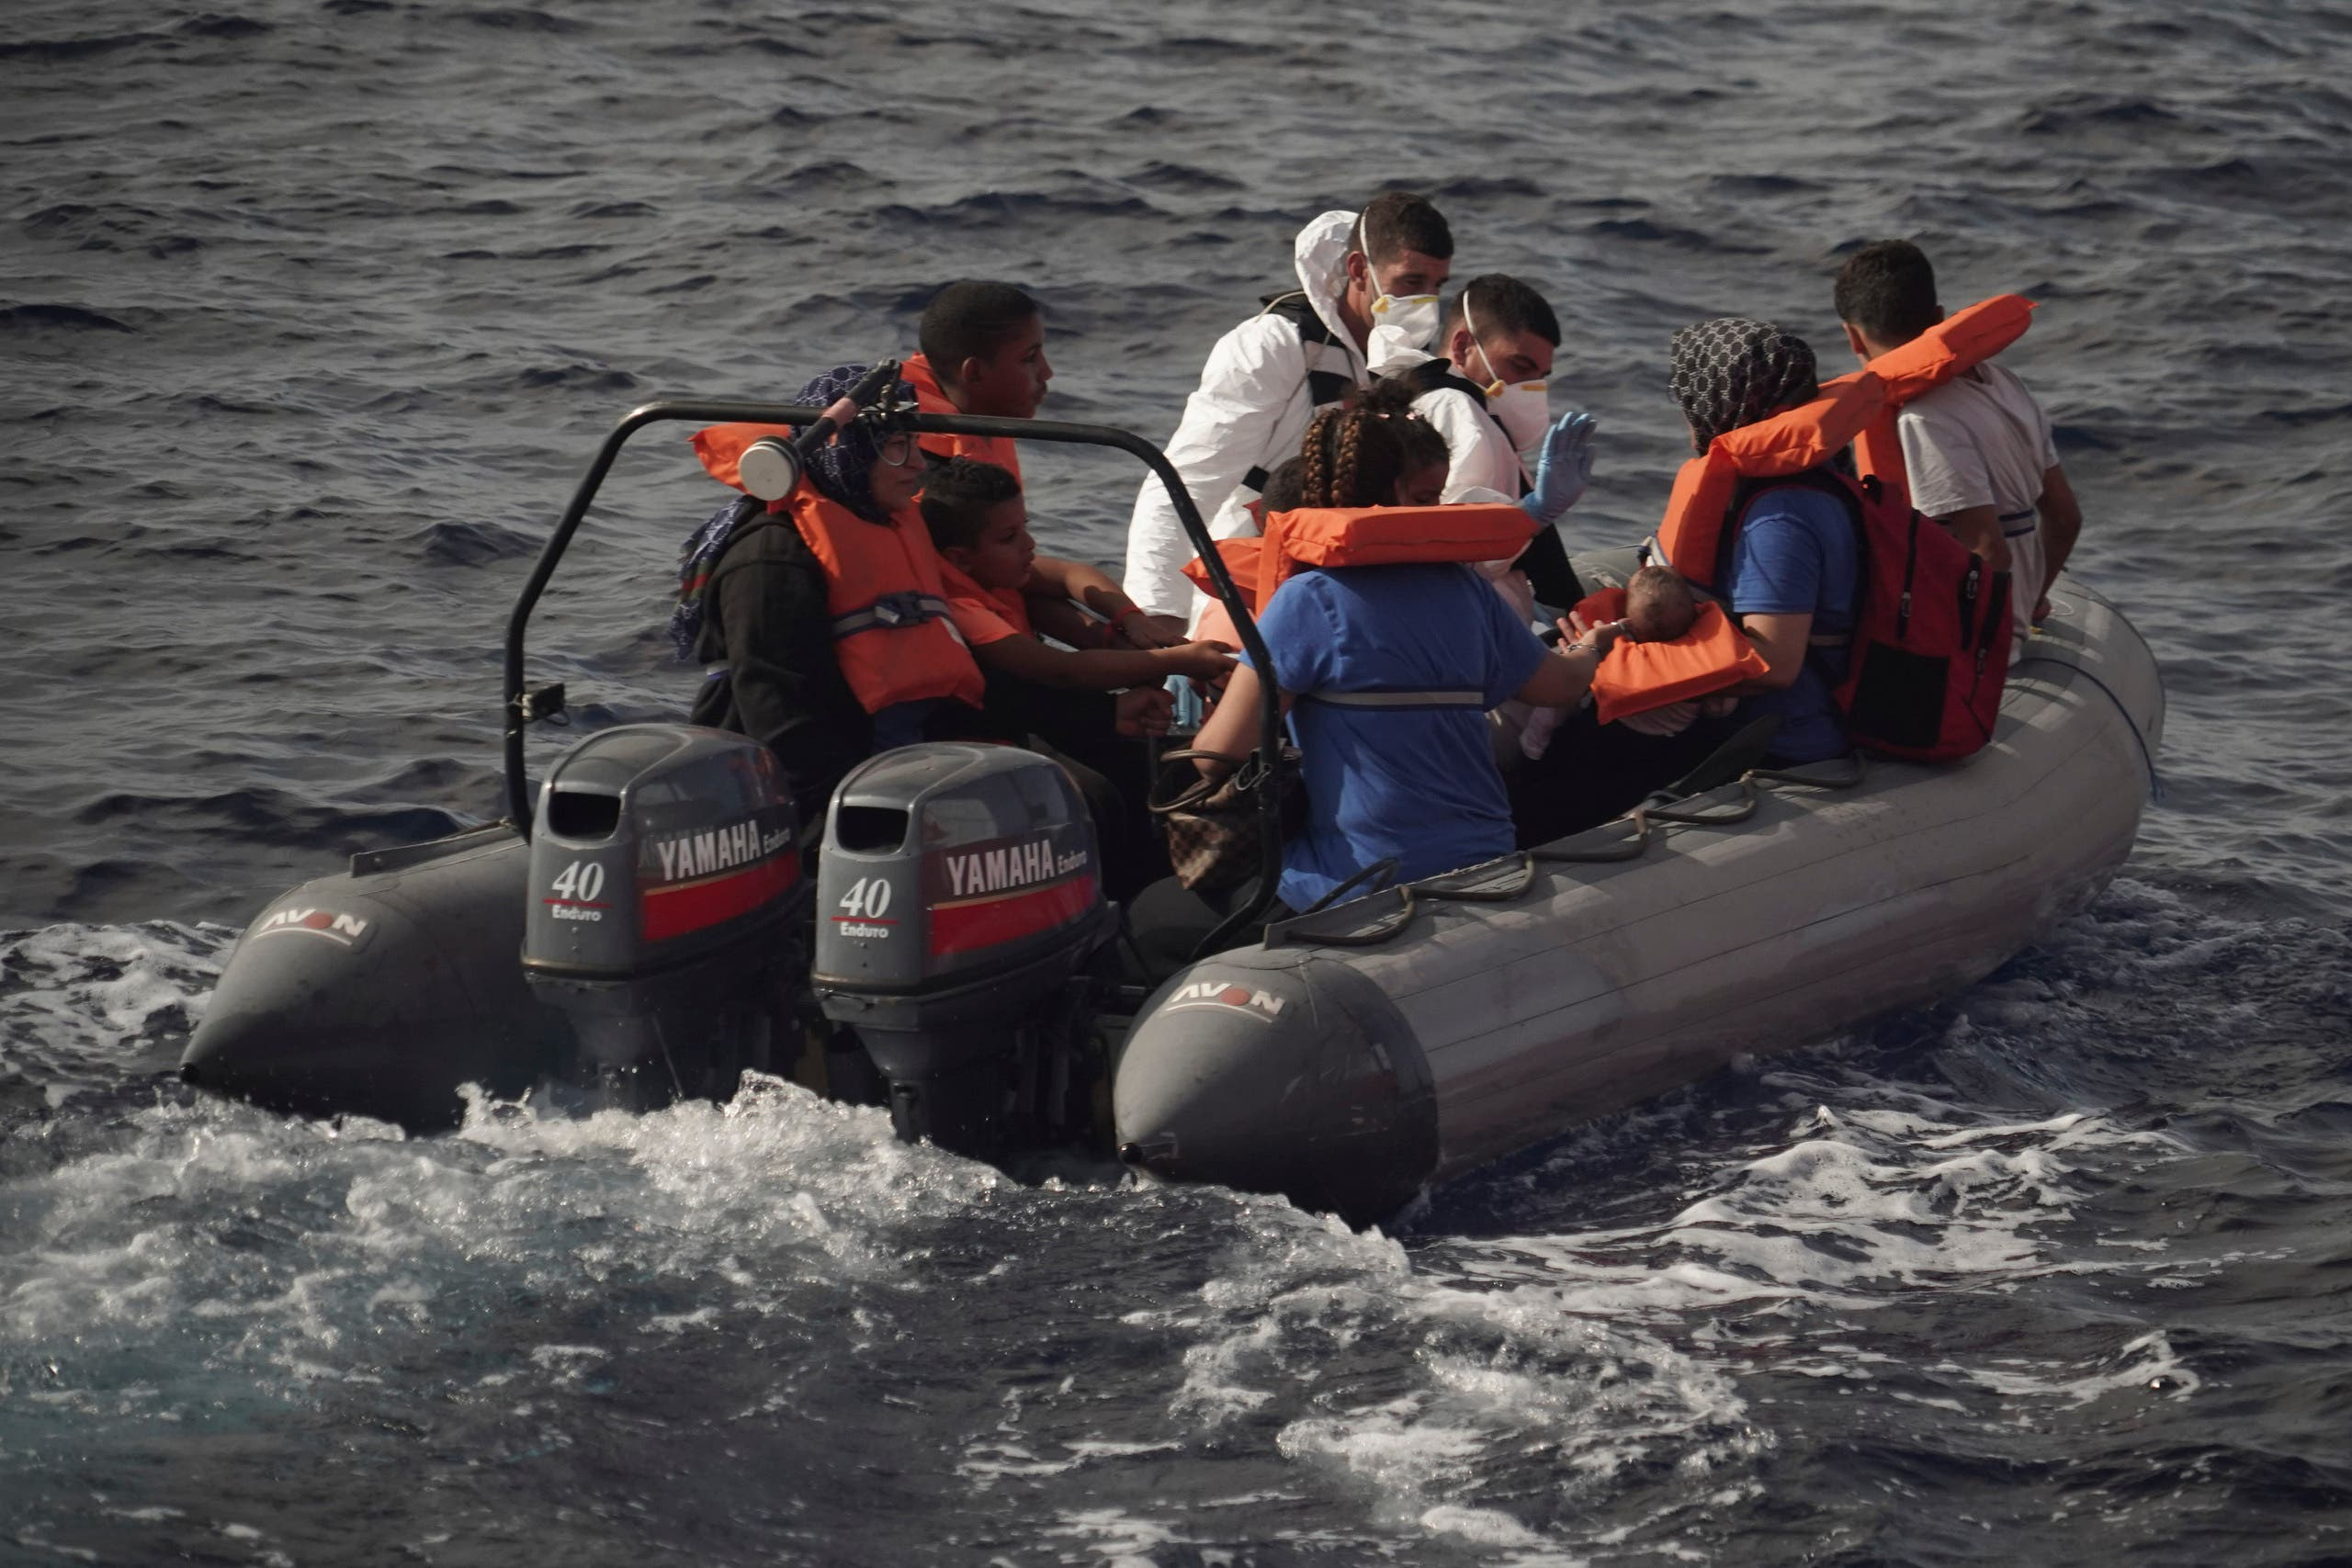 Members of the Maltese Armed Forces take a group of migrants to a Maltese military ship in the Mediterranean Sea, on September 20, 2019. (AP)